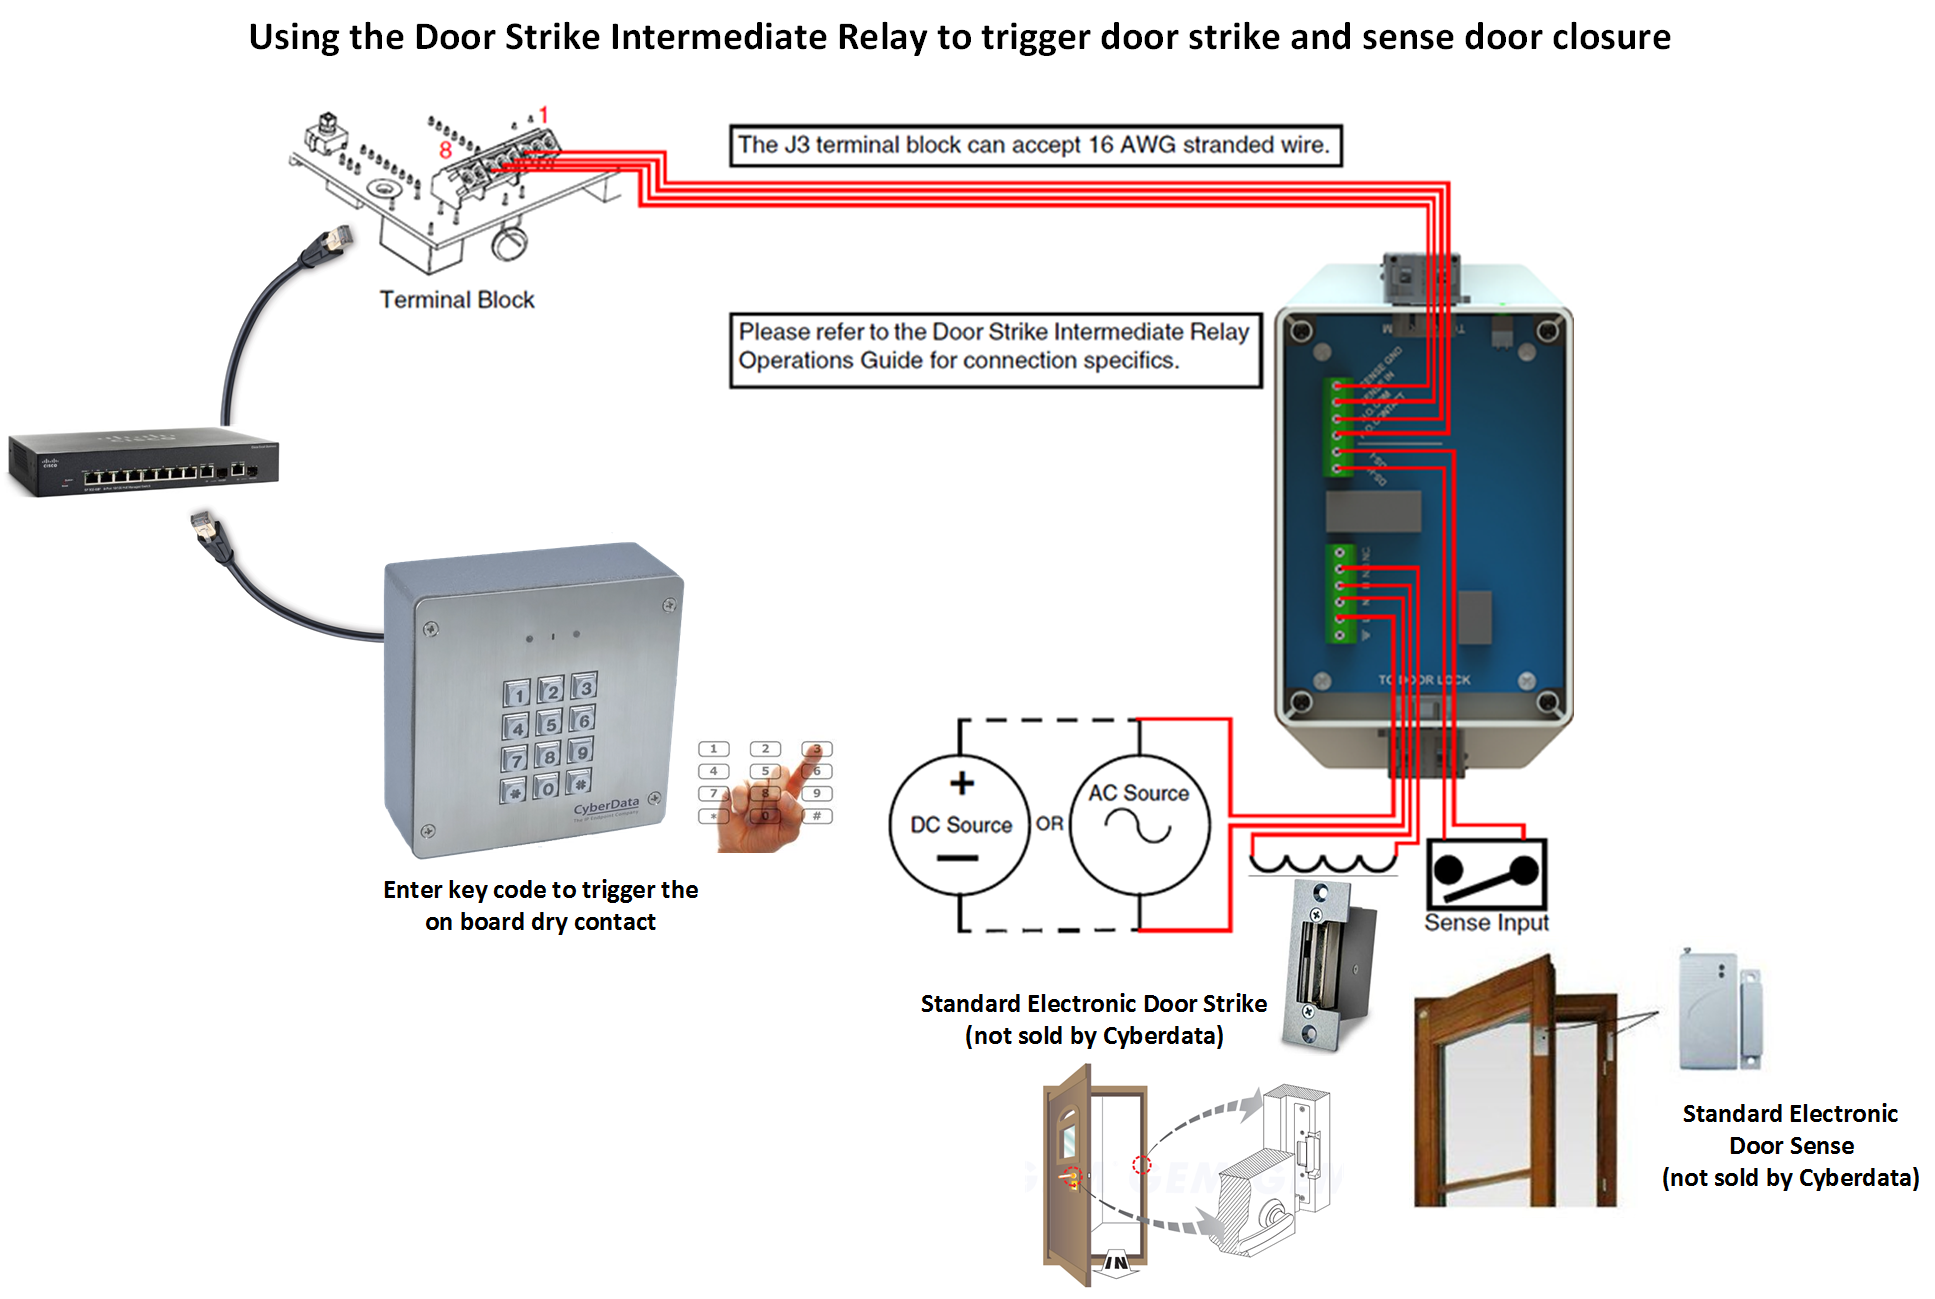 011433 Secure Access Control Keypad Cyberdata Corporation Dtmf Based Load System Circuit Diagram We Highly Recommend That Inductive And High Current Devices Use Our Door Strike Intermediate Relay Module Product Cd 011269